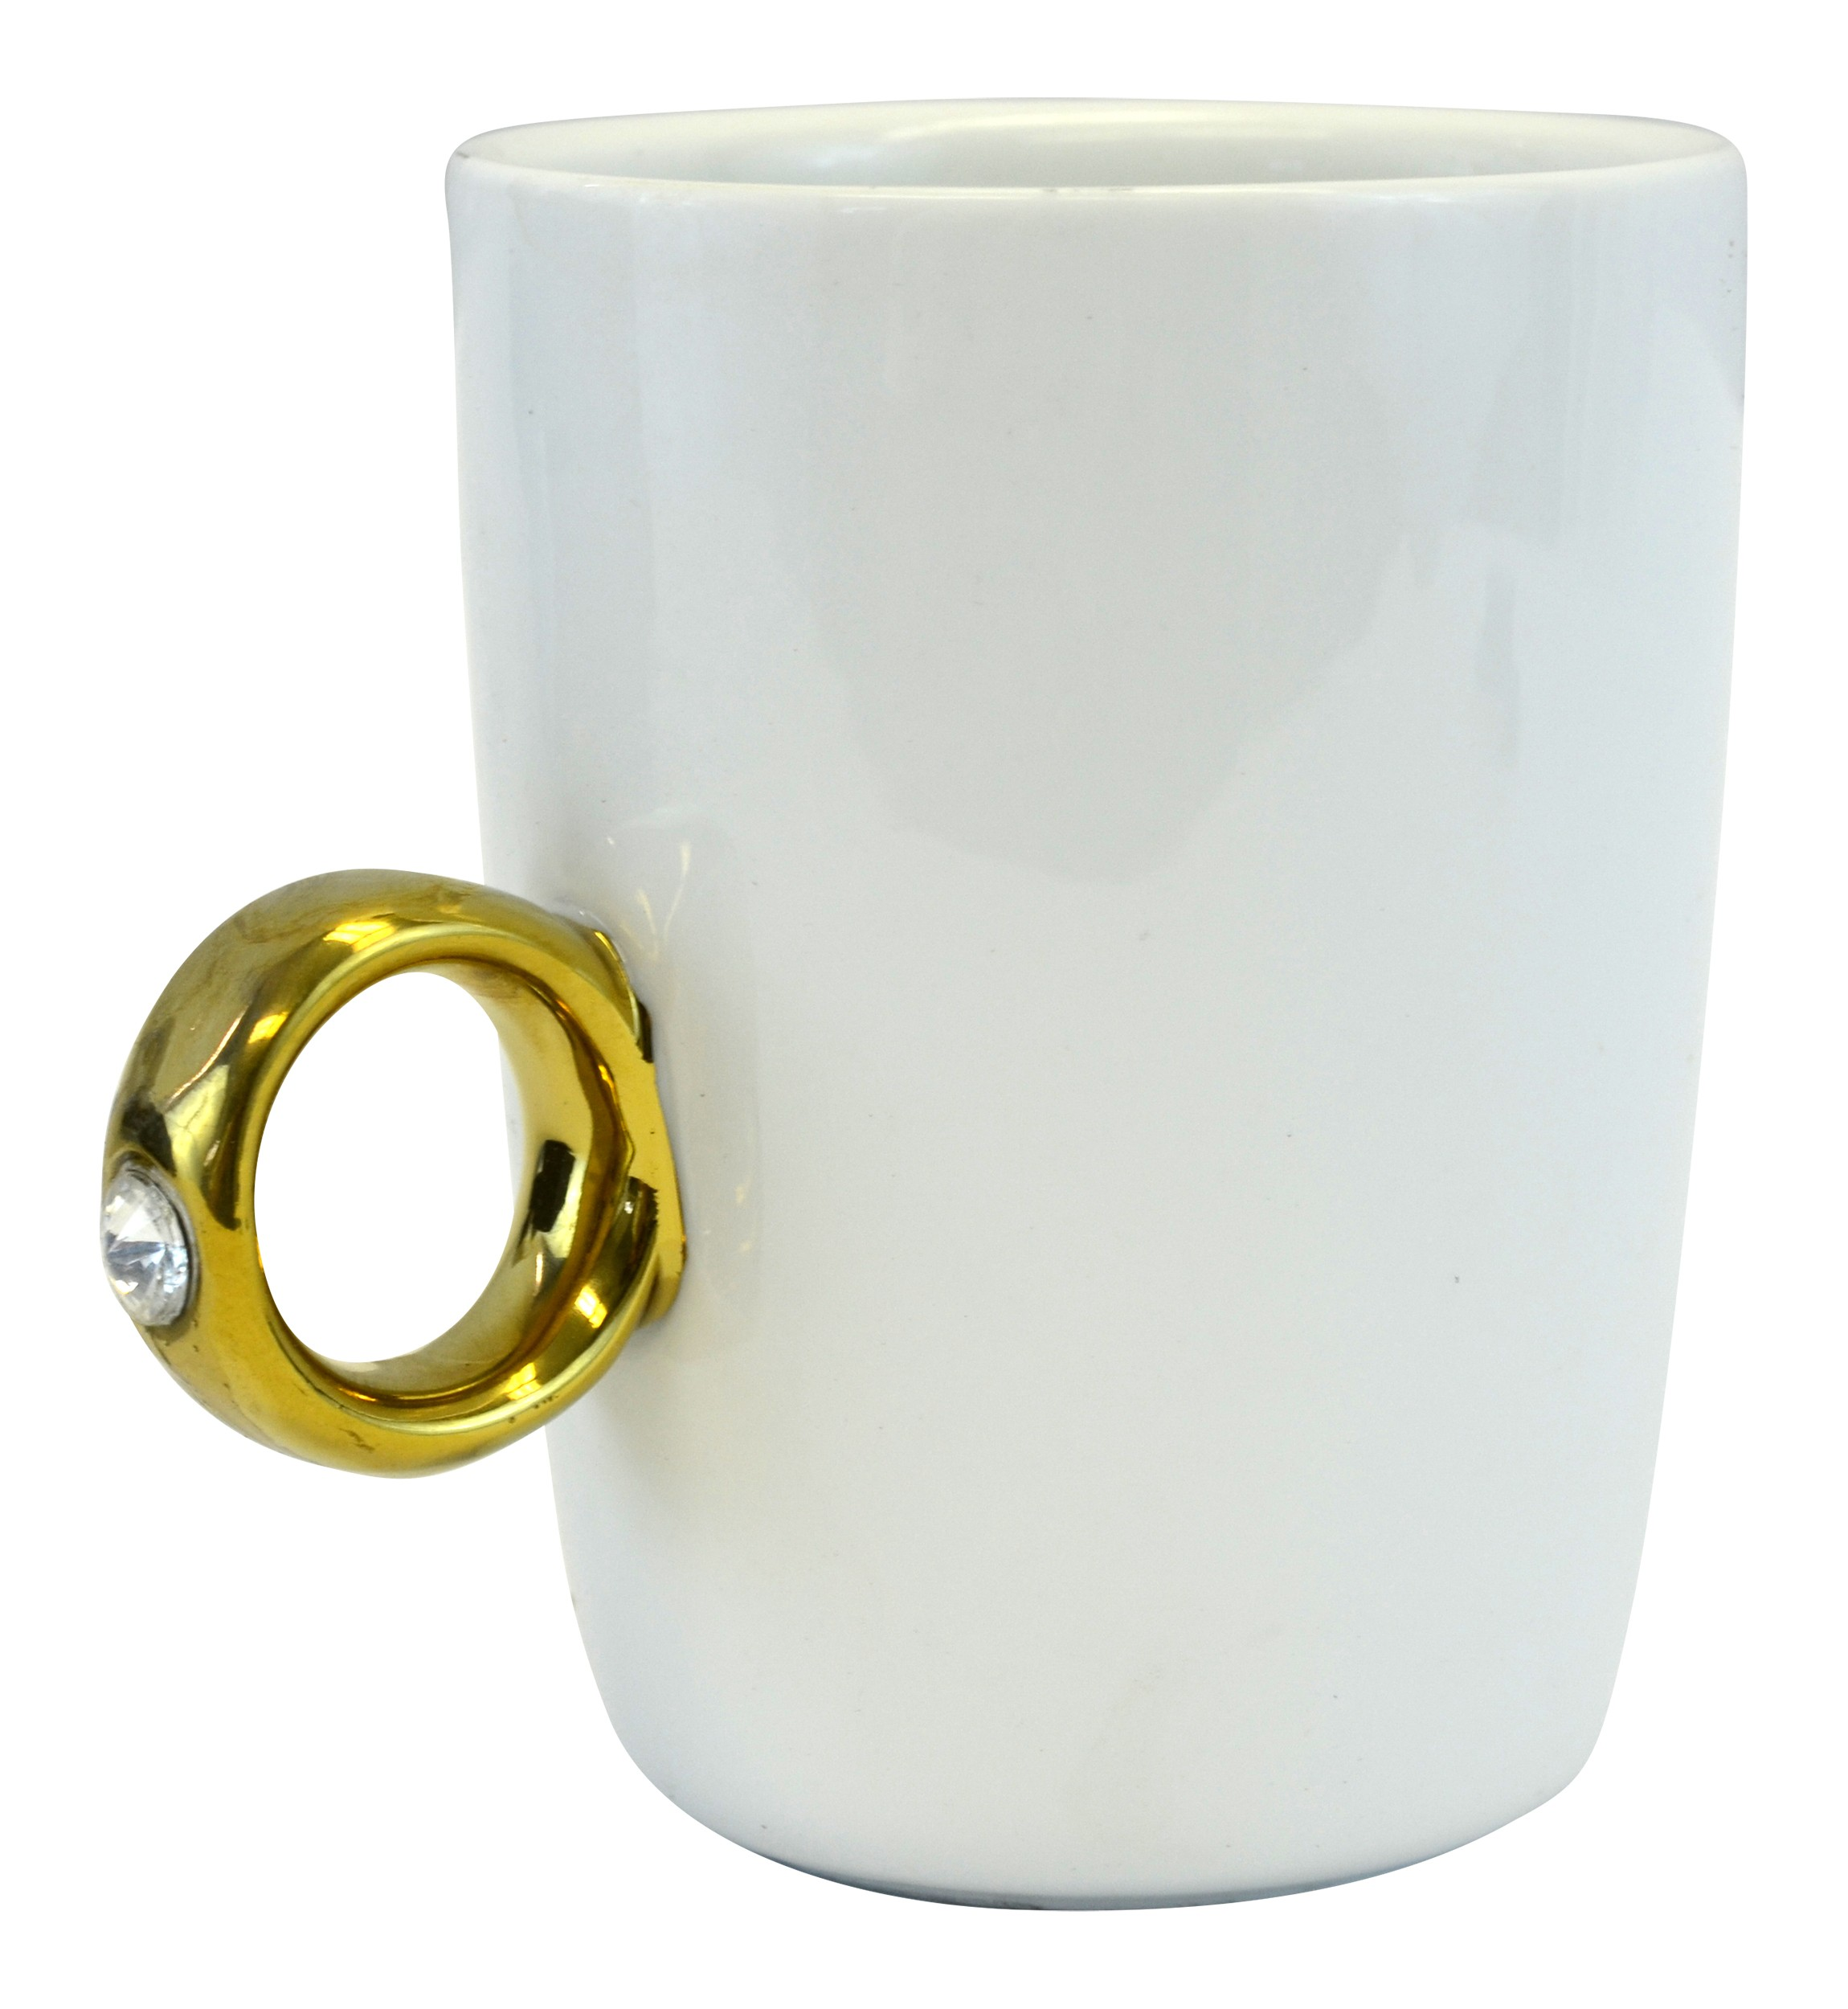 Novelty Engagement 2 Carat Solitaire Ring Mug Cup, Gold